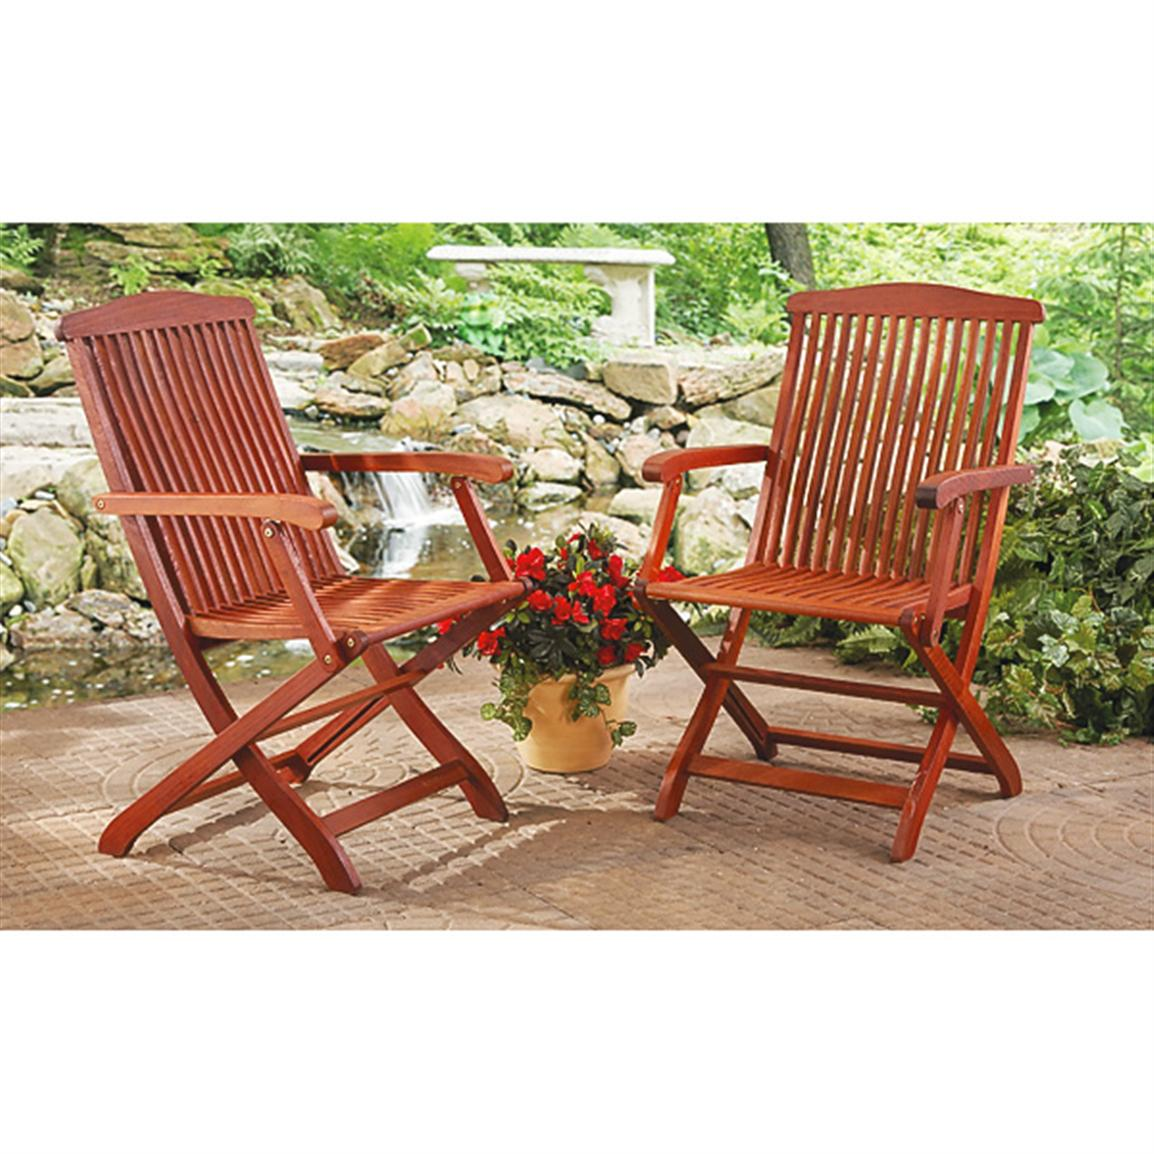 brown wooden folding chairs sling for sale 2 eucalyptus 209783 patio